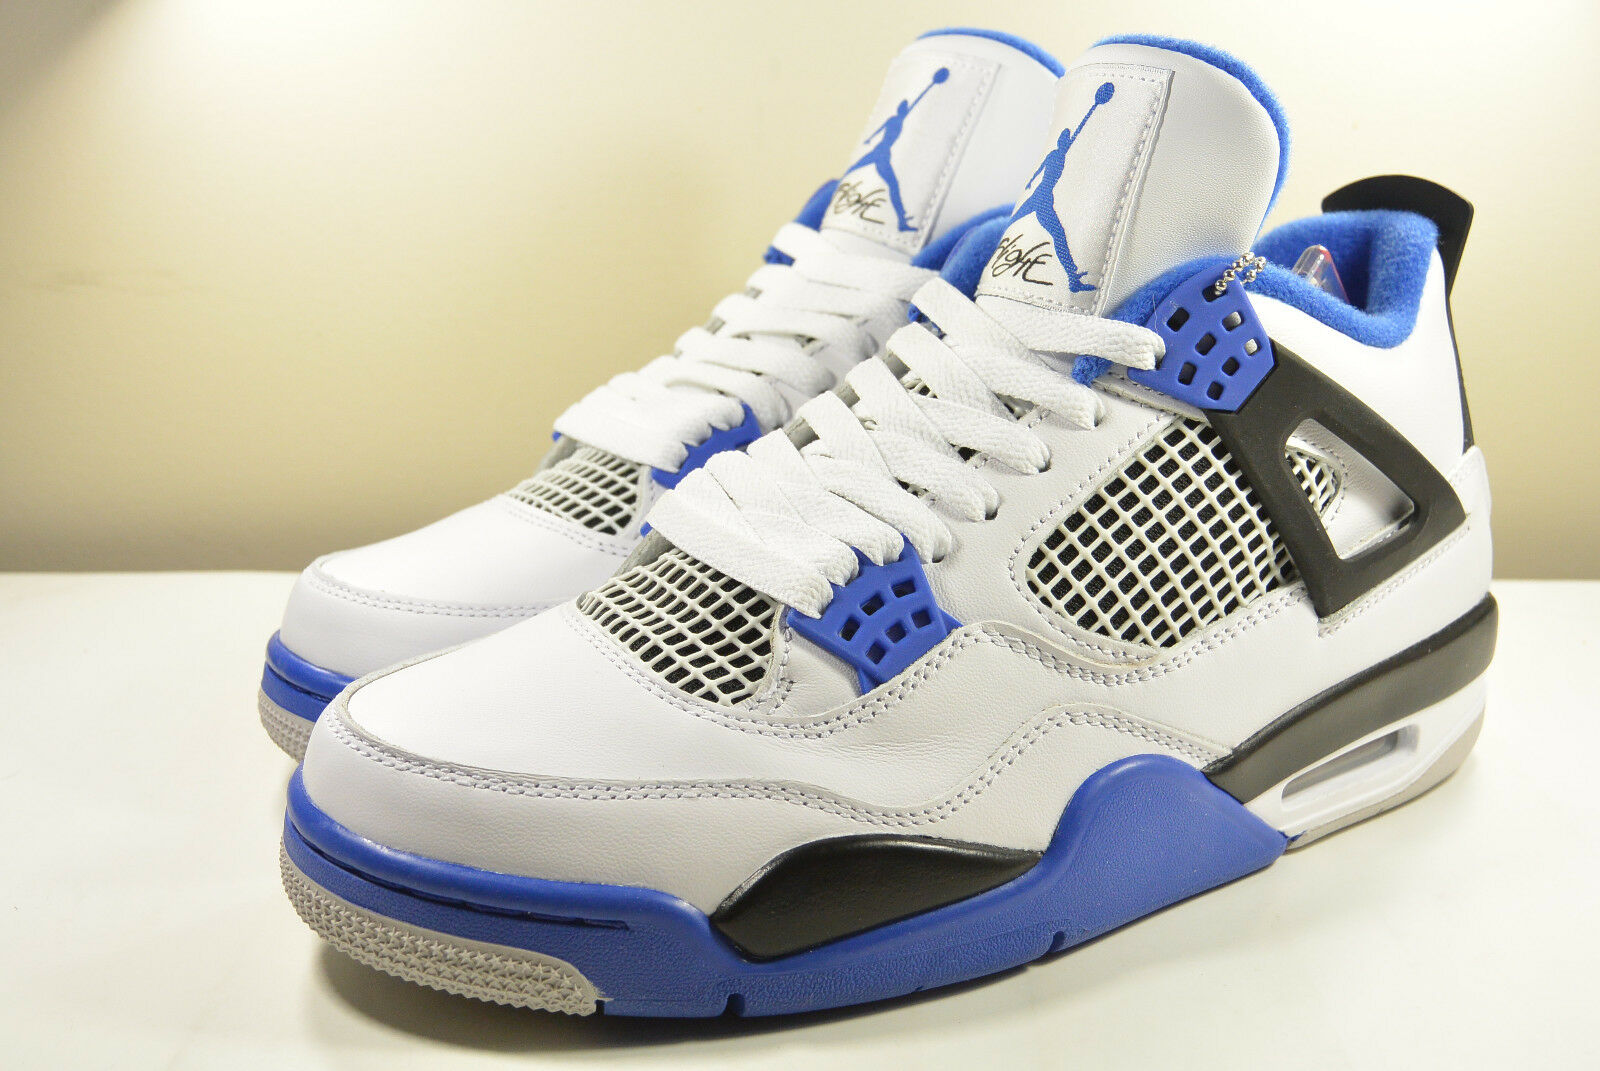 DS NIKE 2017 AIR JORDAN IV WHITE MOTORSPORT ROYAL 8, 8.5, 13 I III V VI XI XIII